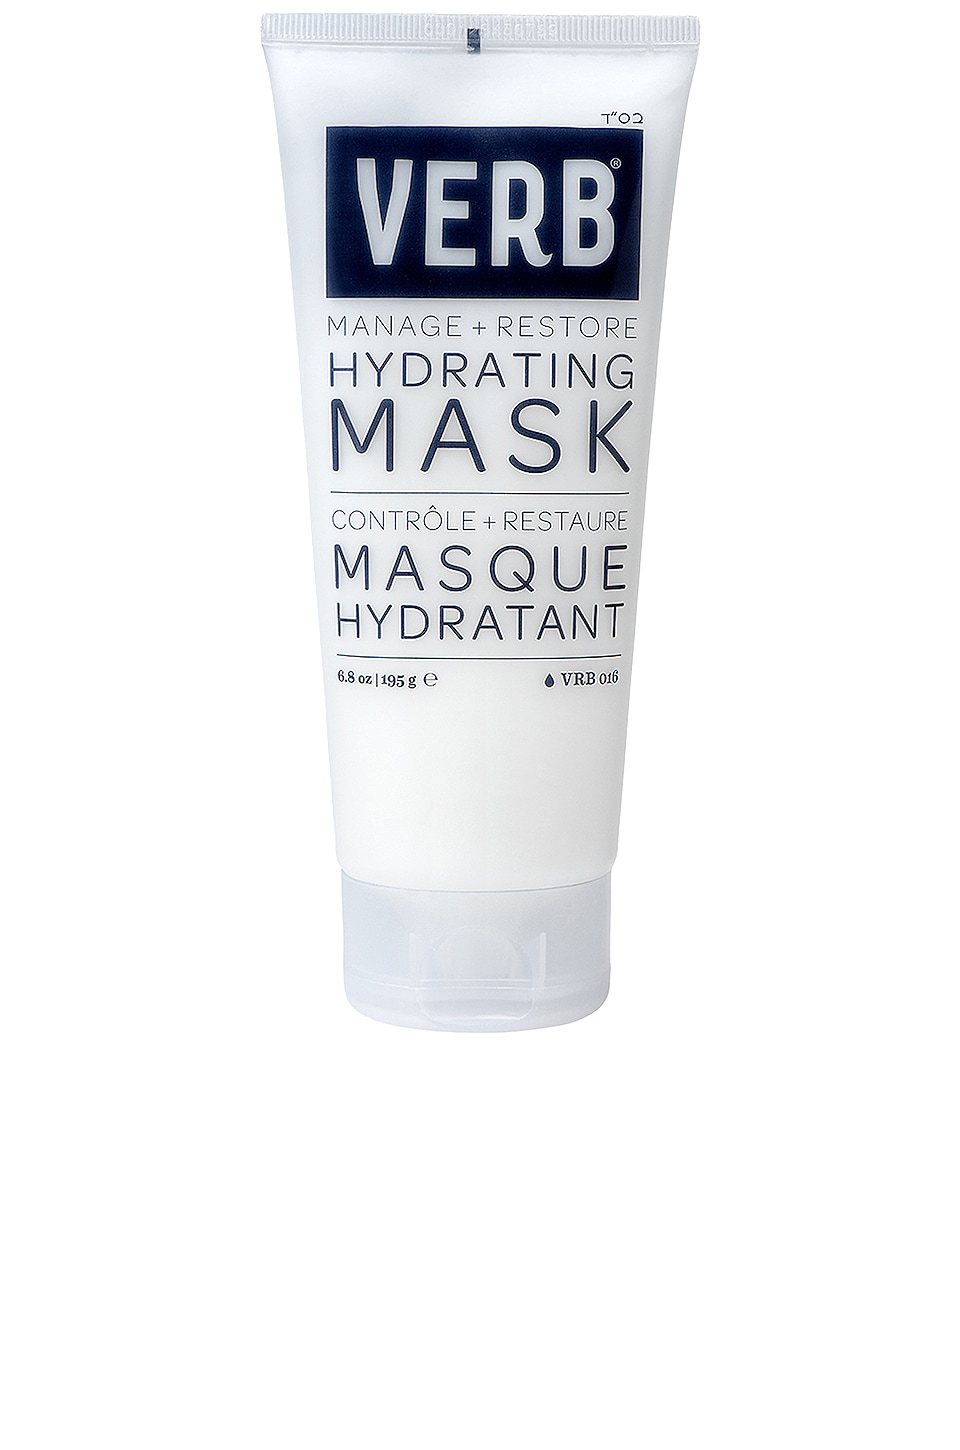 VERB MASCARA DE CABELLO HYDRATING MASK